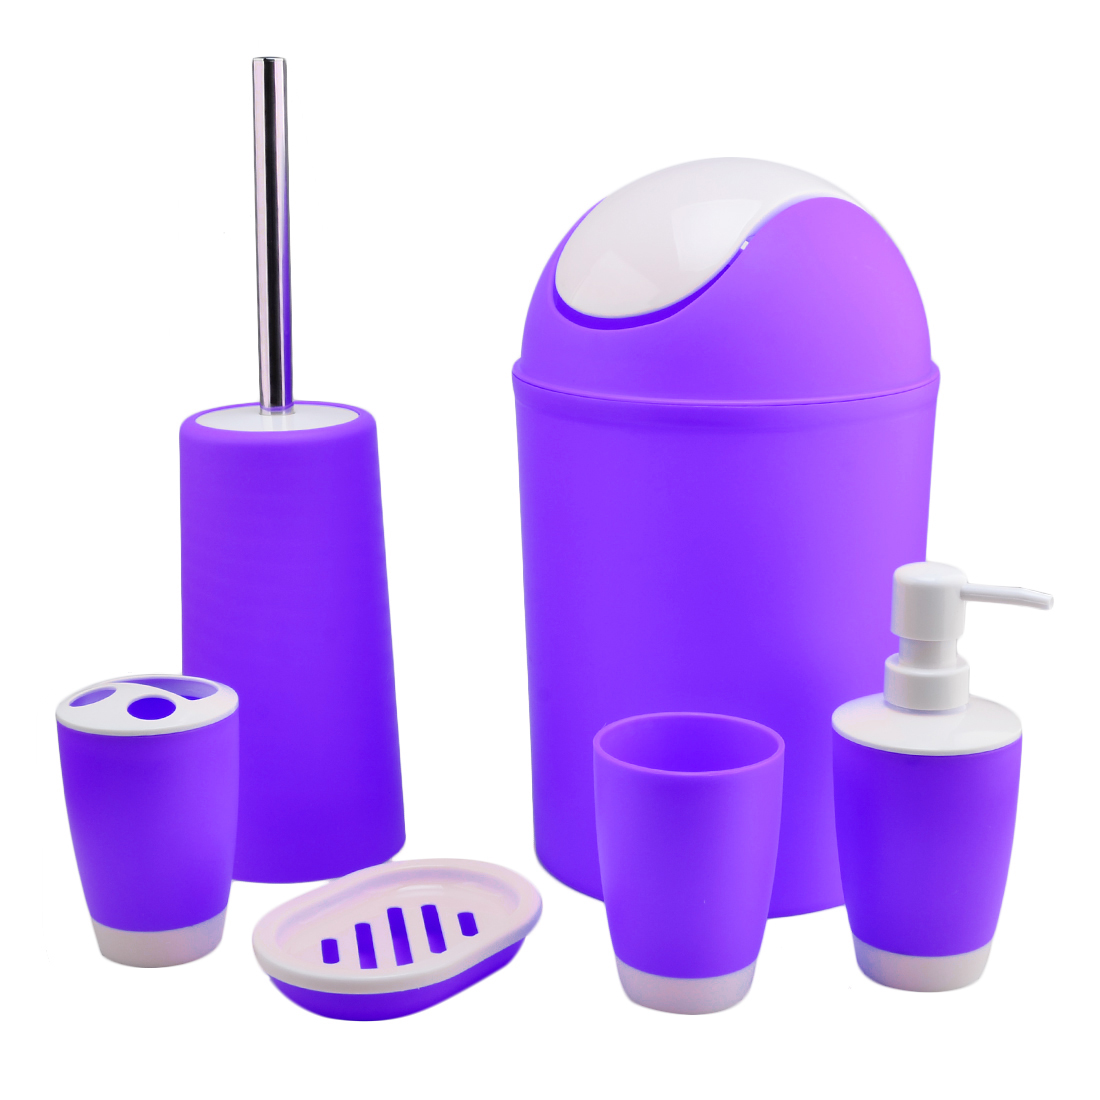 6 Piece Plastic Bath Accessories Set Lotion Pump Bathroom Accessories Set Purple by